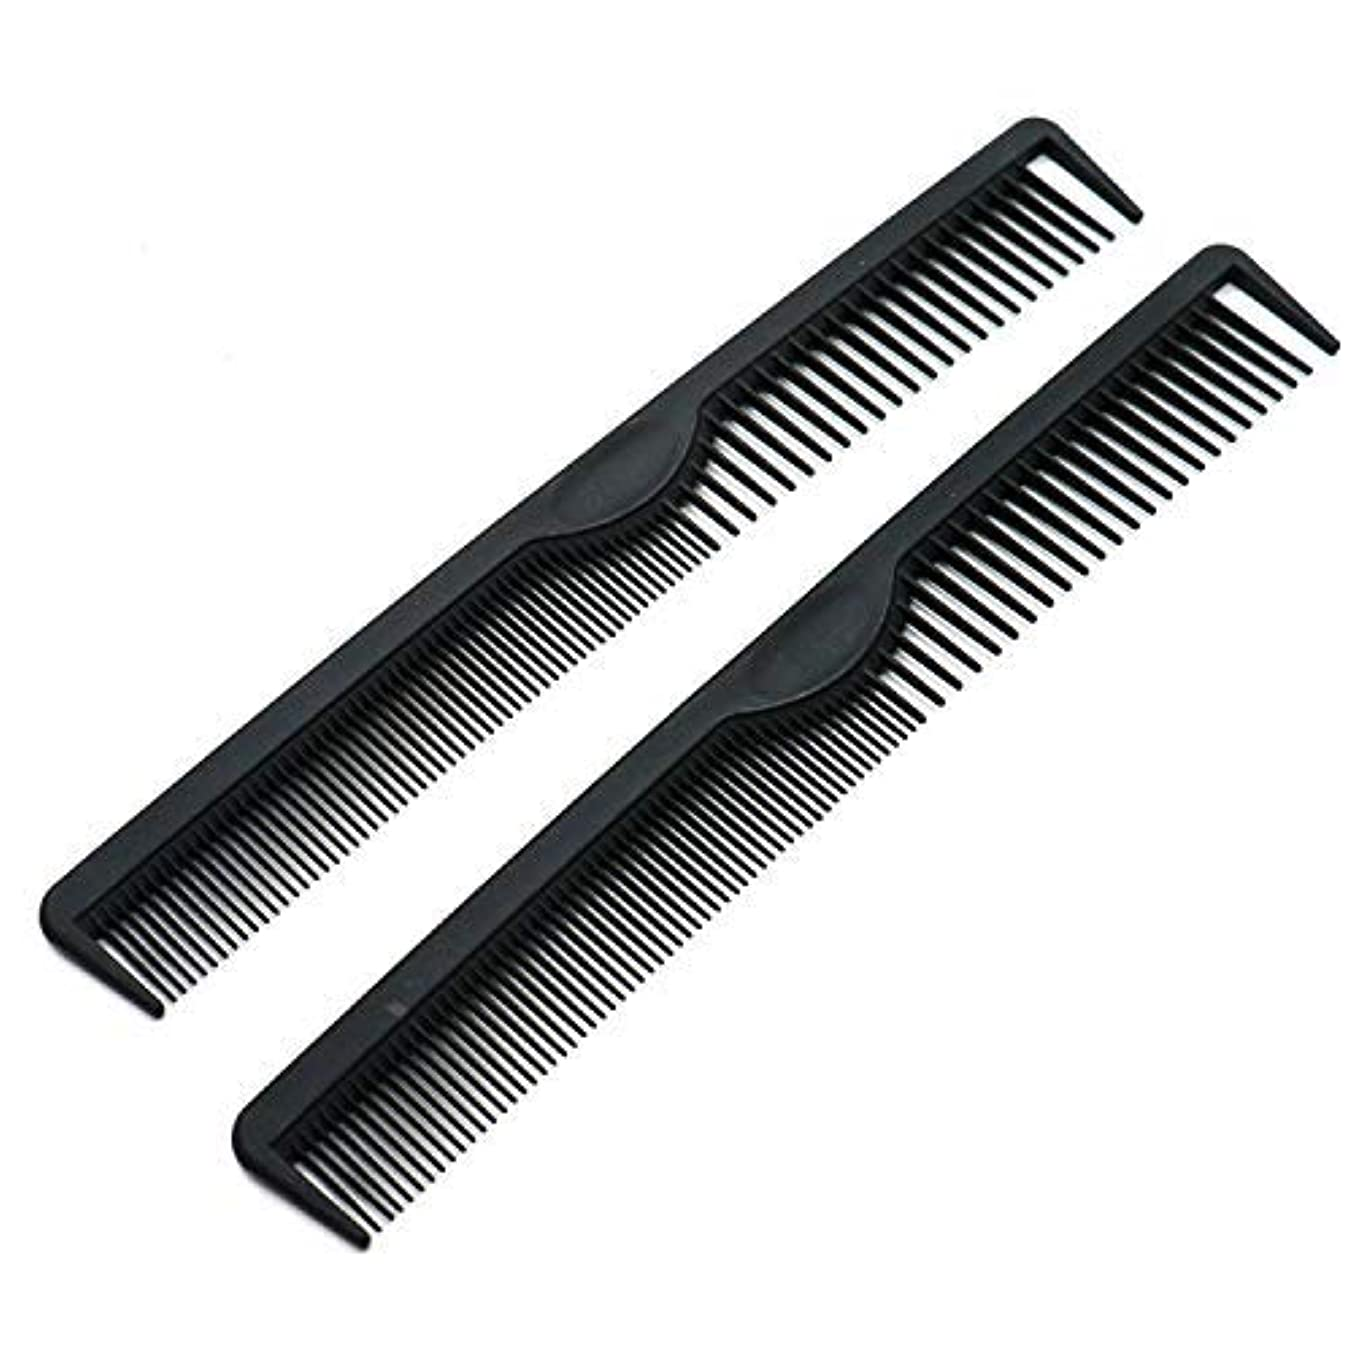 ケージ神経衰弱カーテンIDS Combs 2 PCS Black Carbon Fiber Hair Combs with Fine Cutting Comb for Women and Man [並行輸入品]